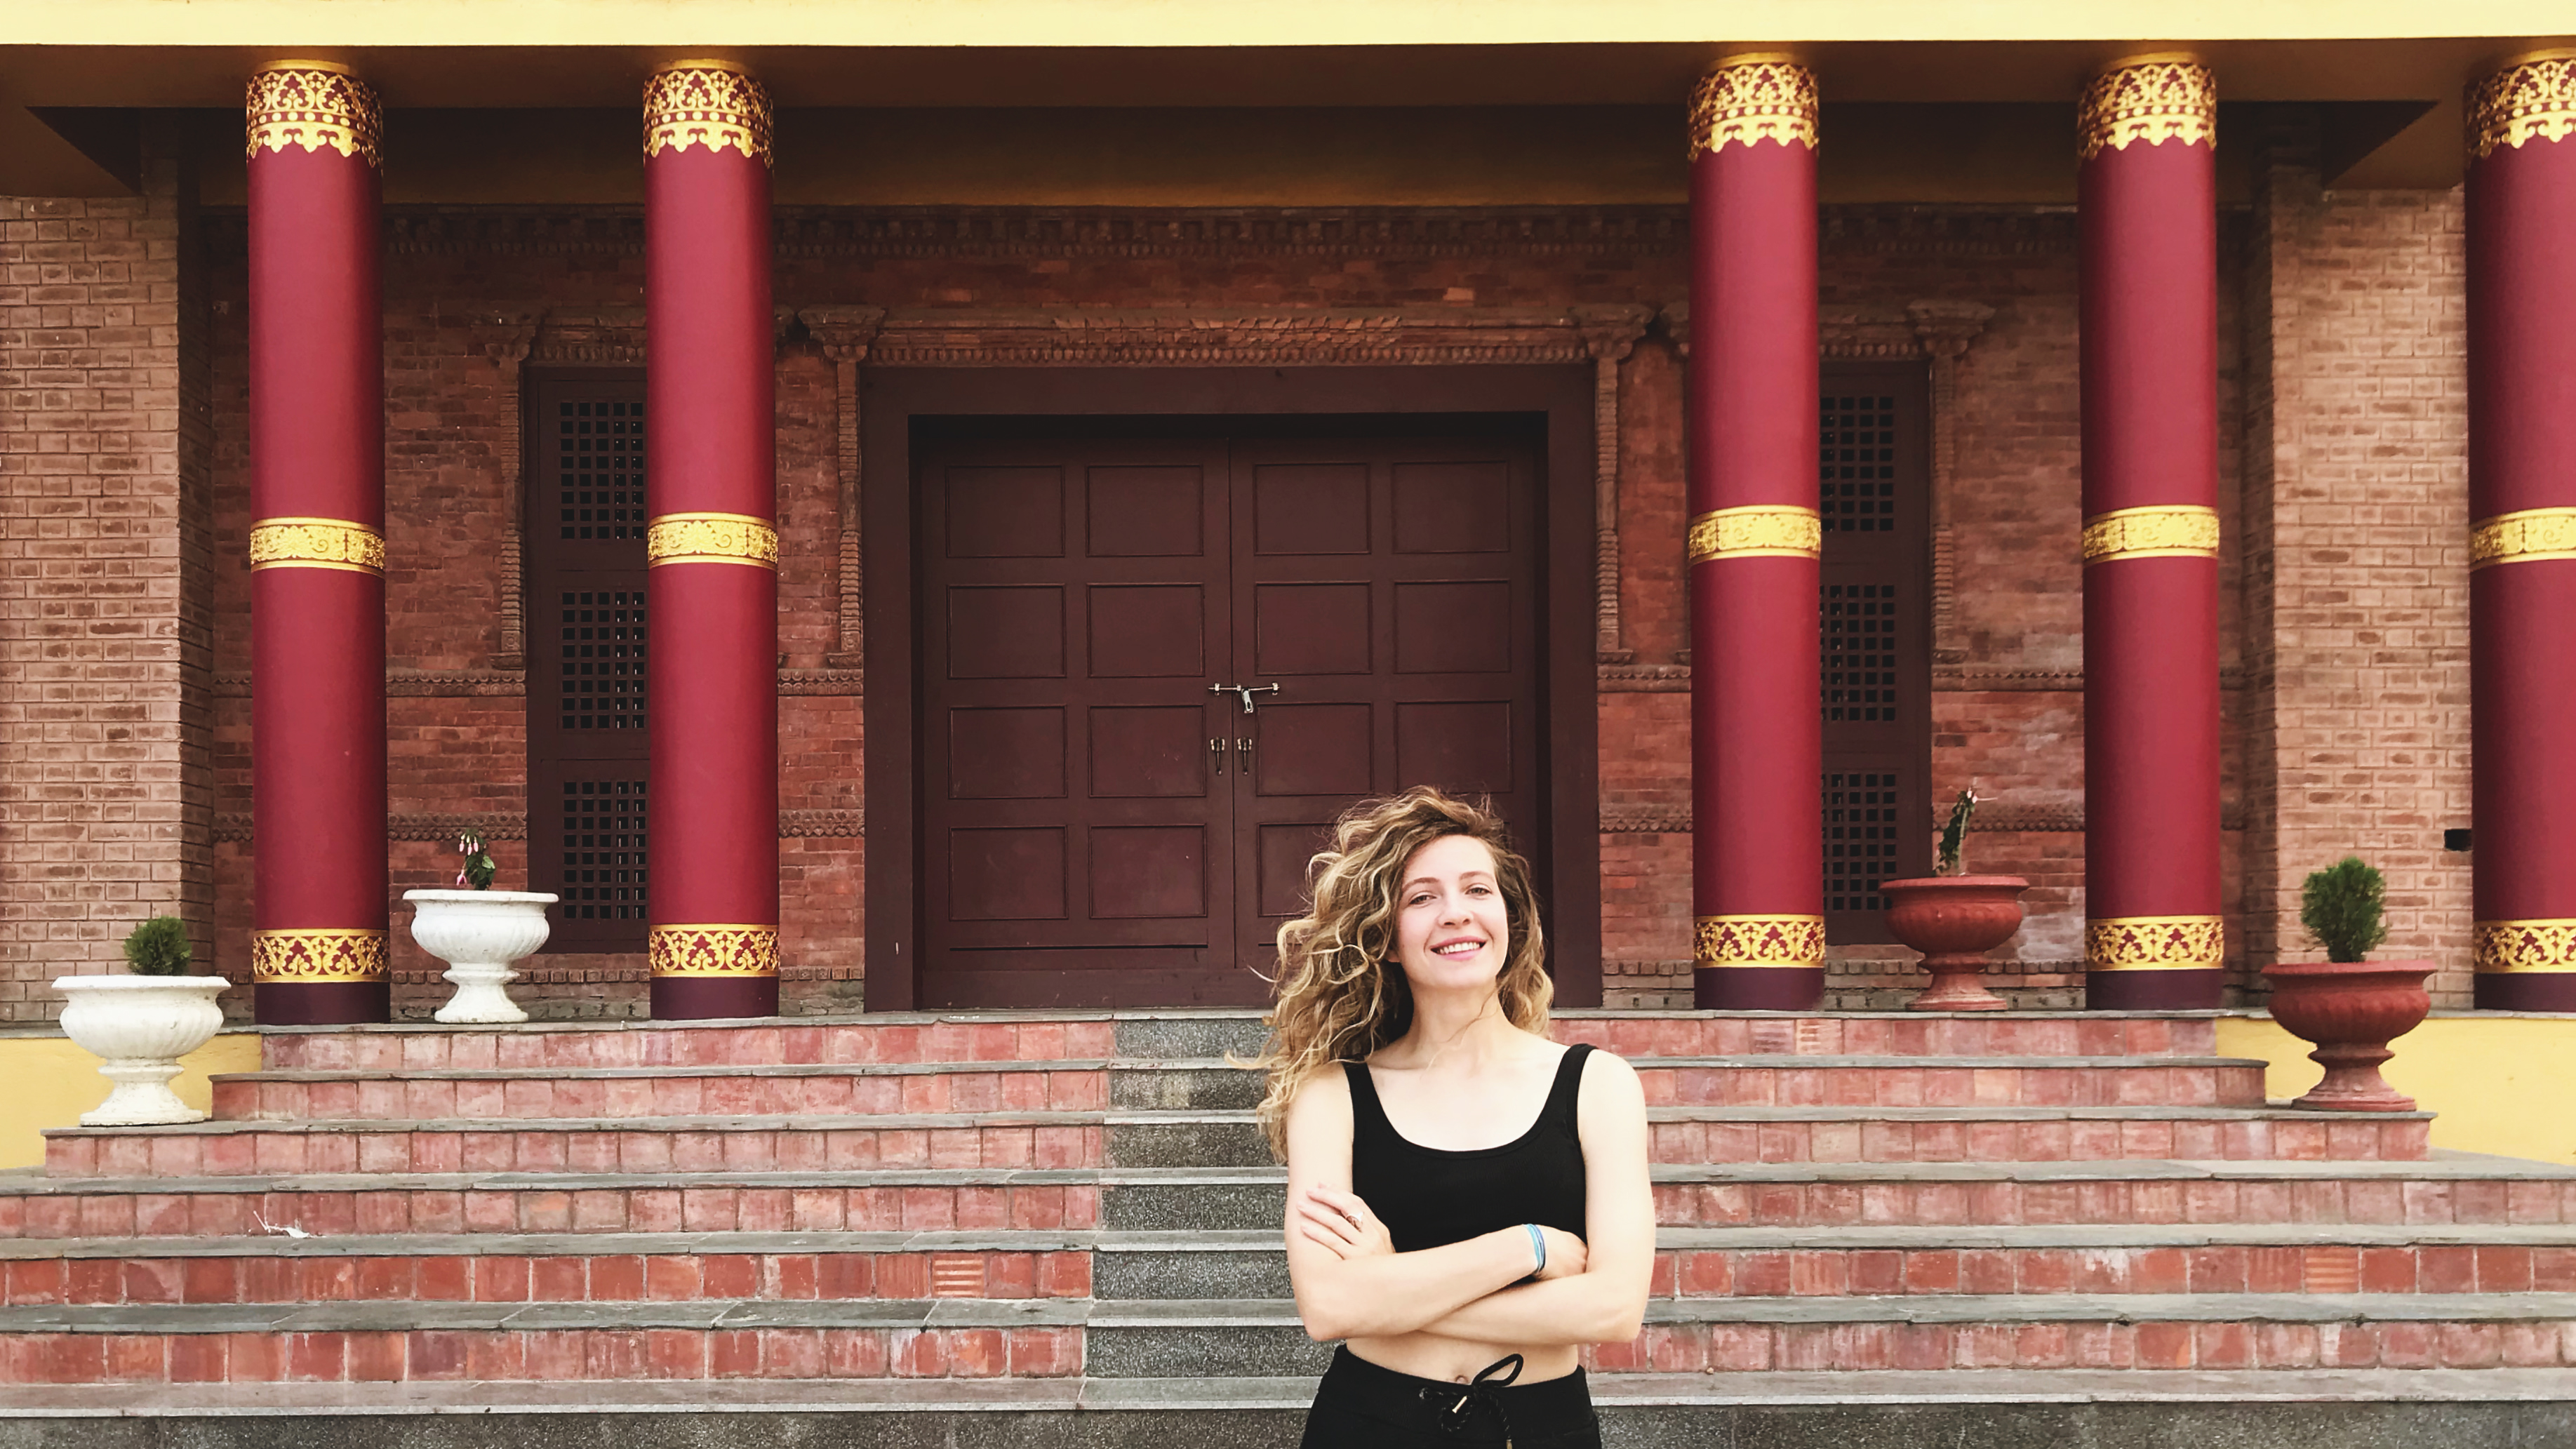 Katya Demidkova in front of the Sharminub monastery, near Kathmandu, in Nepal. During the COVID-19 pandemic, she is teaching English to the boys who live there, studying to become monks.